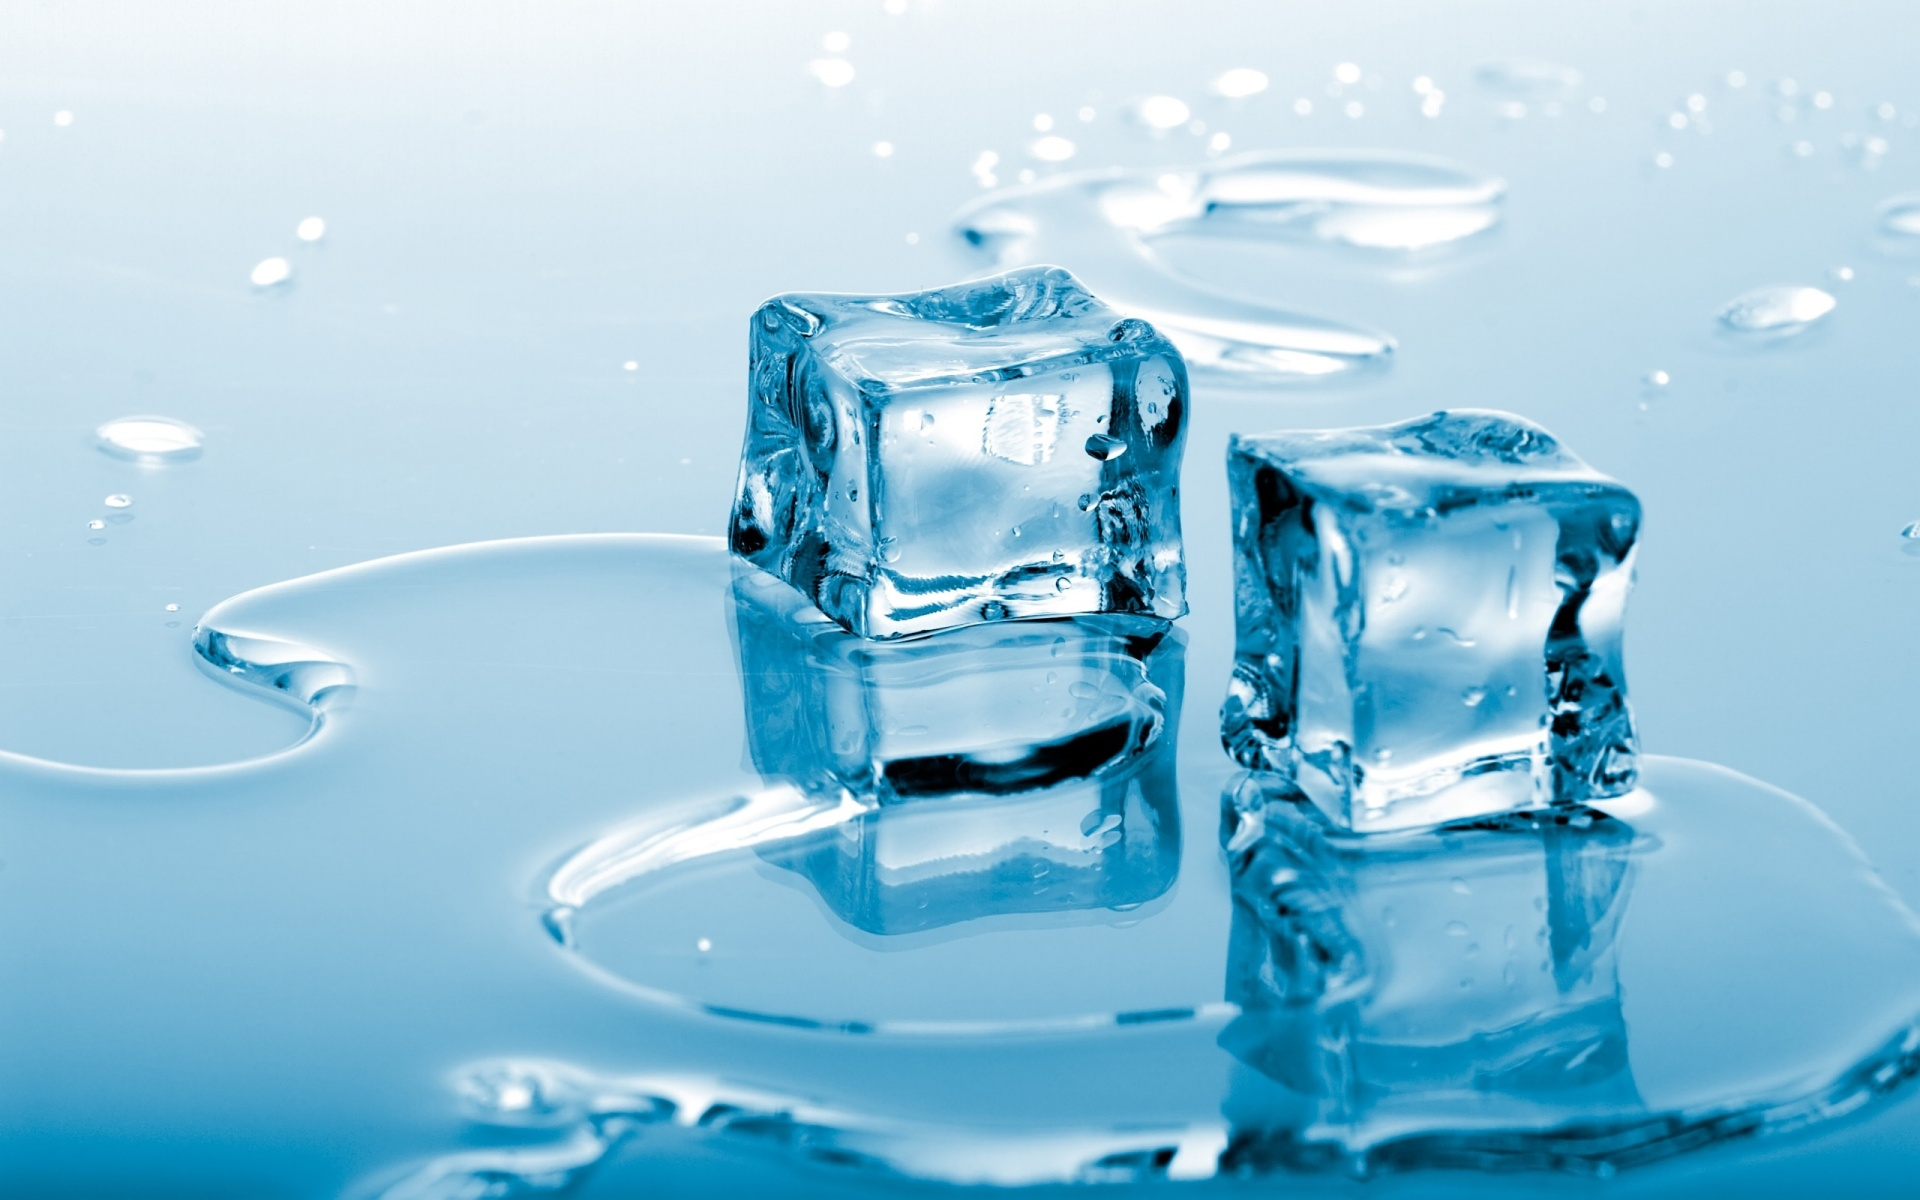 Ice Cube HD Wallpaper 3D Abstract Wallpapers 1920x1200